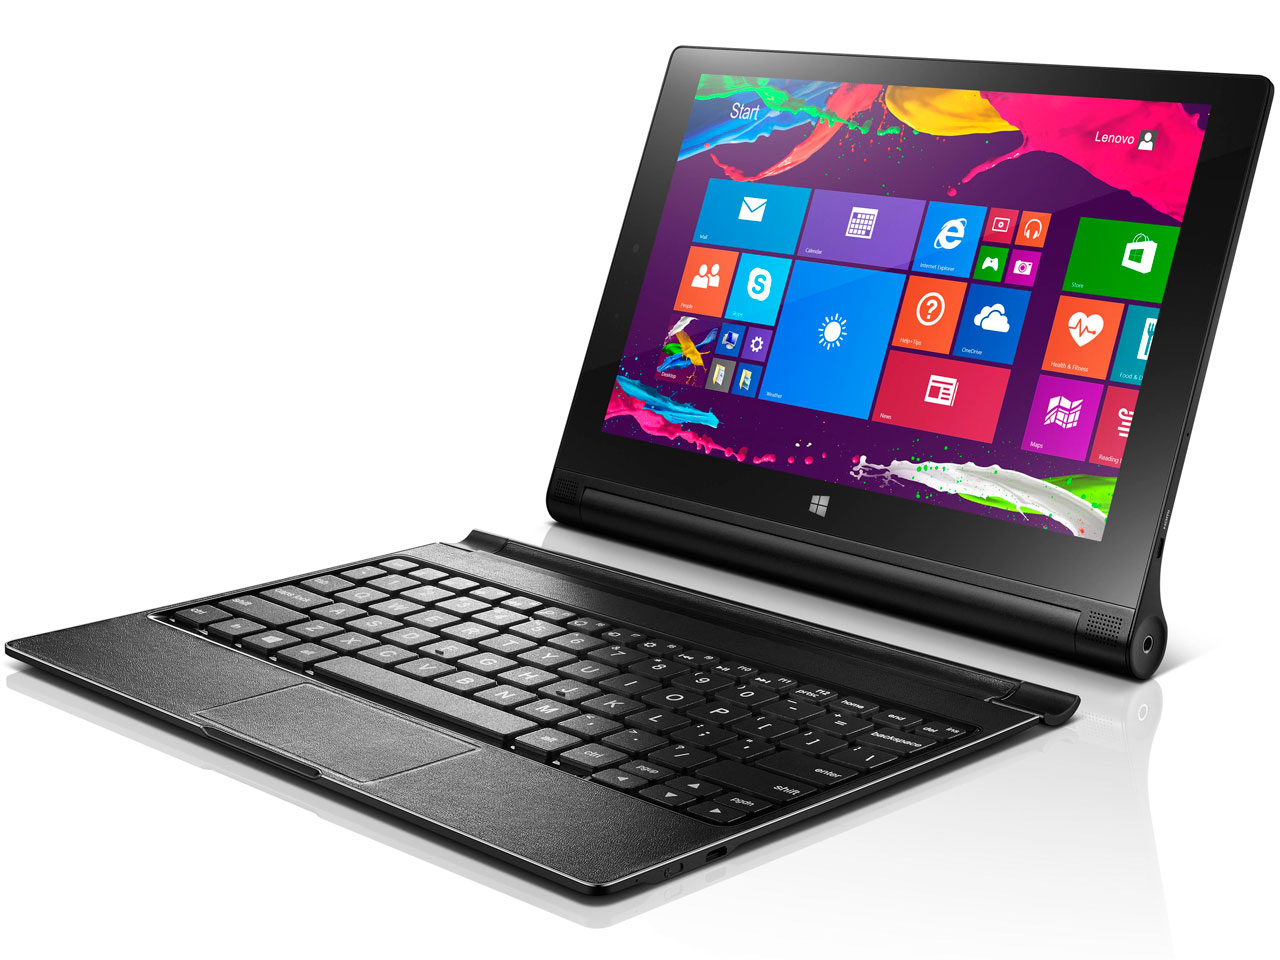 �w�{�� �t���i Bluetooth�L�[�{�[�h�J�o�[�x YOGA TABLET 2-1051F 59428422 �̐��i�摜